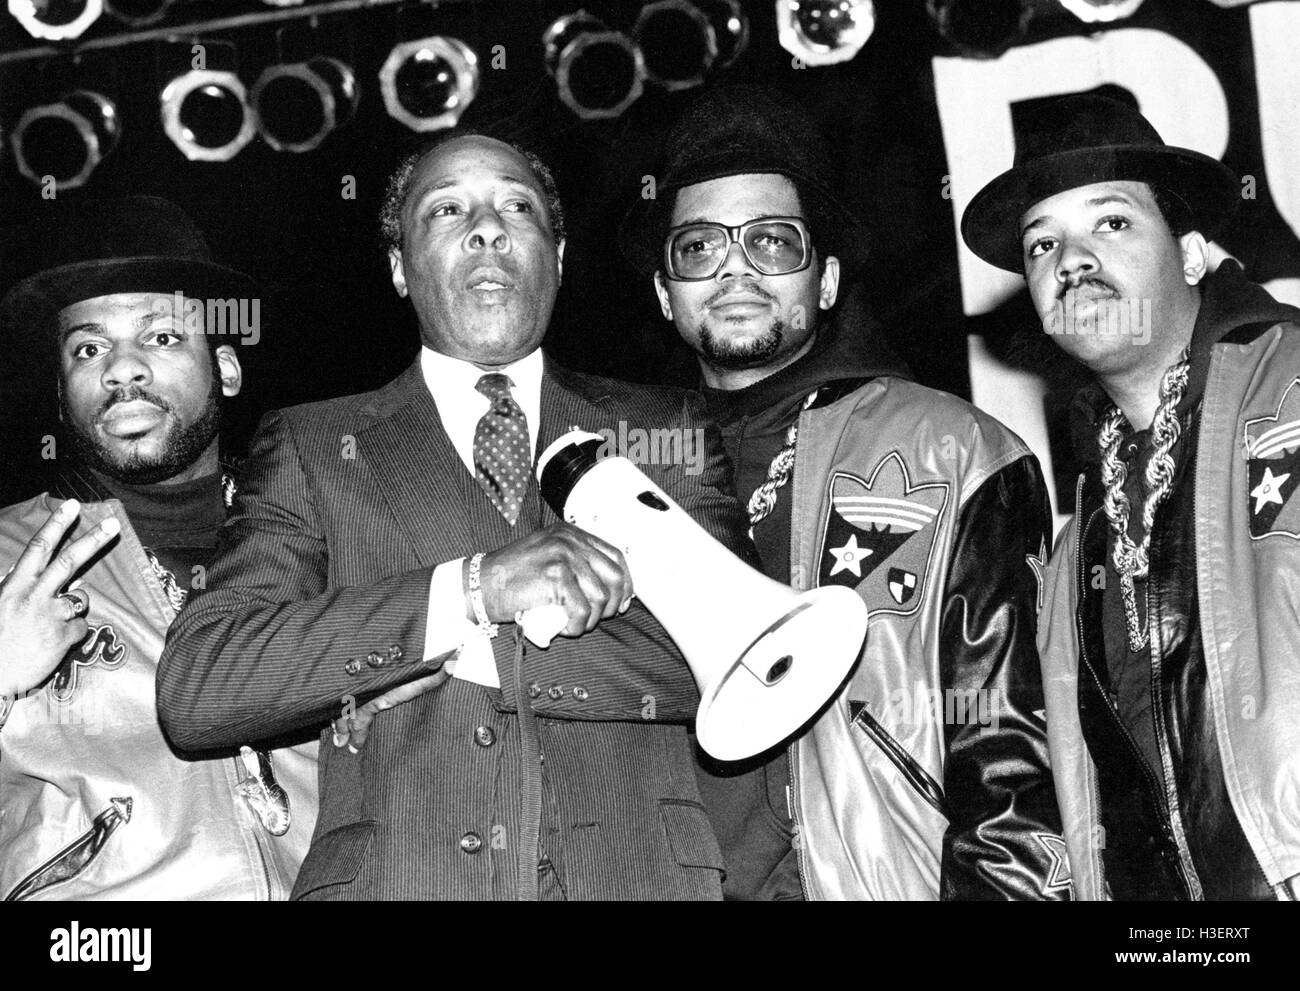 Run DMC an dJoe Clark, Principal of Easide High School performing at Eastside High School in New Jersey on February - Stock Image